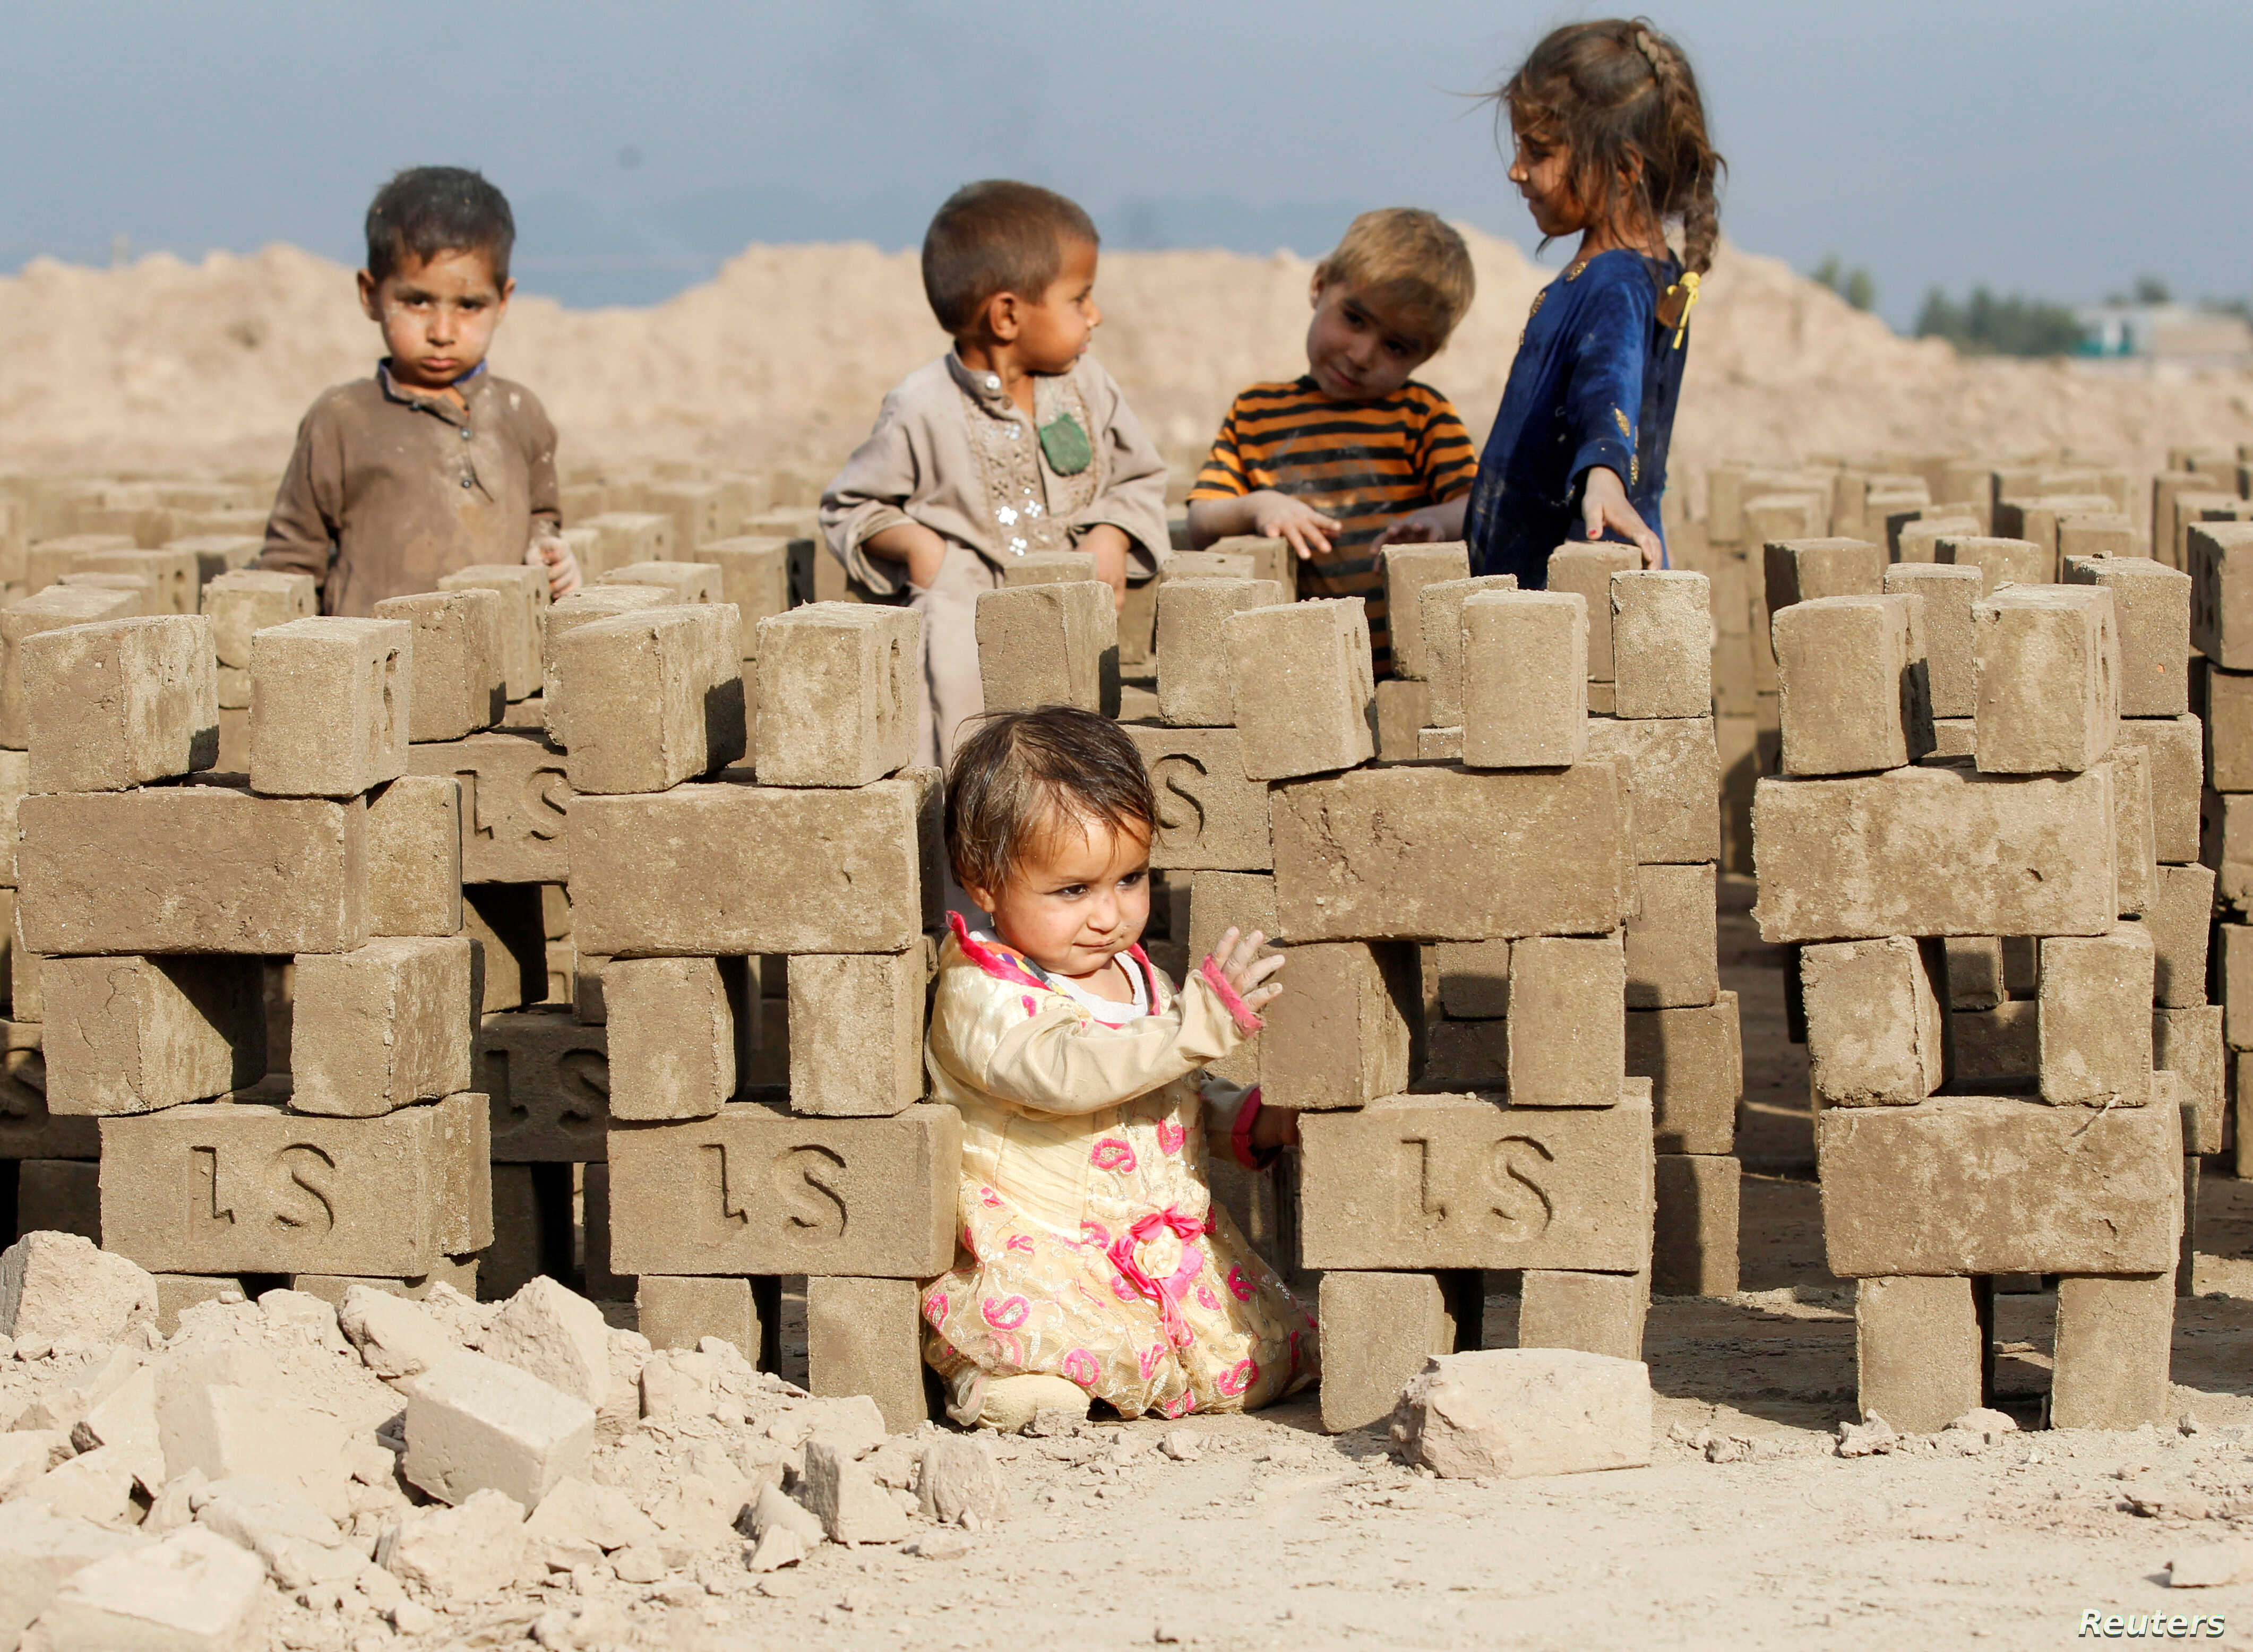 Children play at a brick-making factory on the outskirts of Jalalabad, Afghanistan.